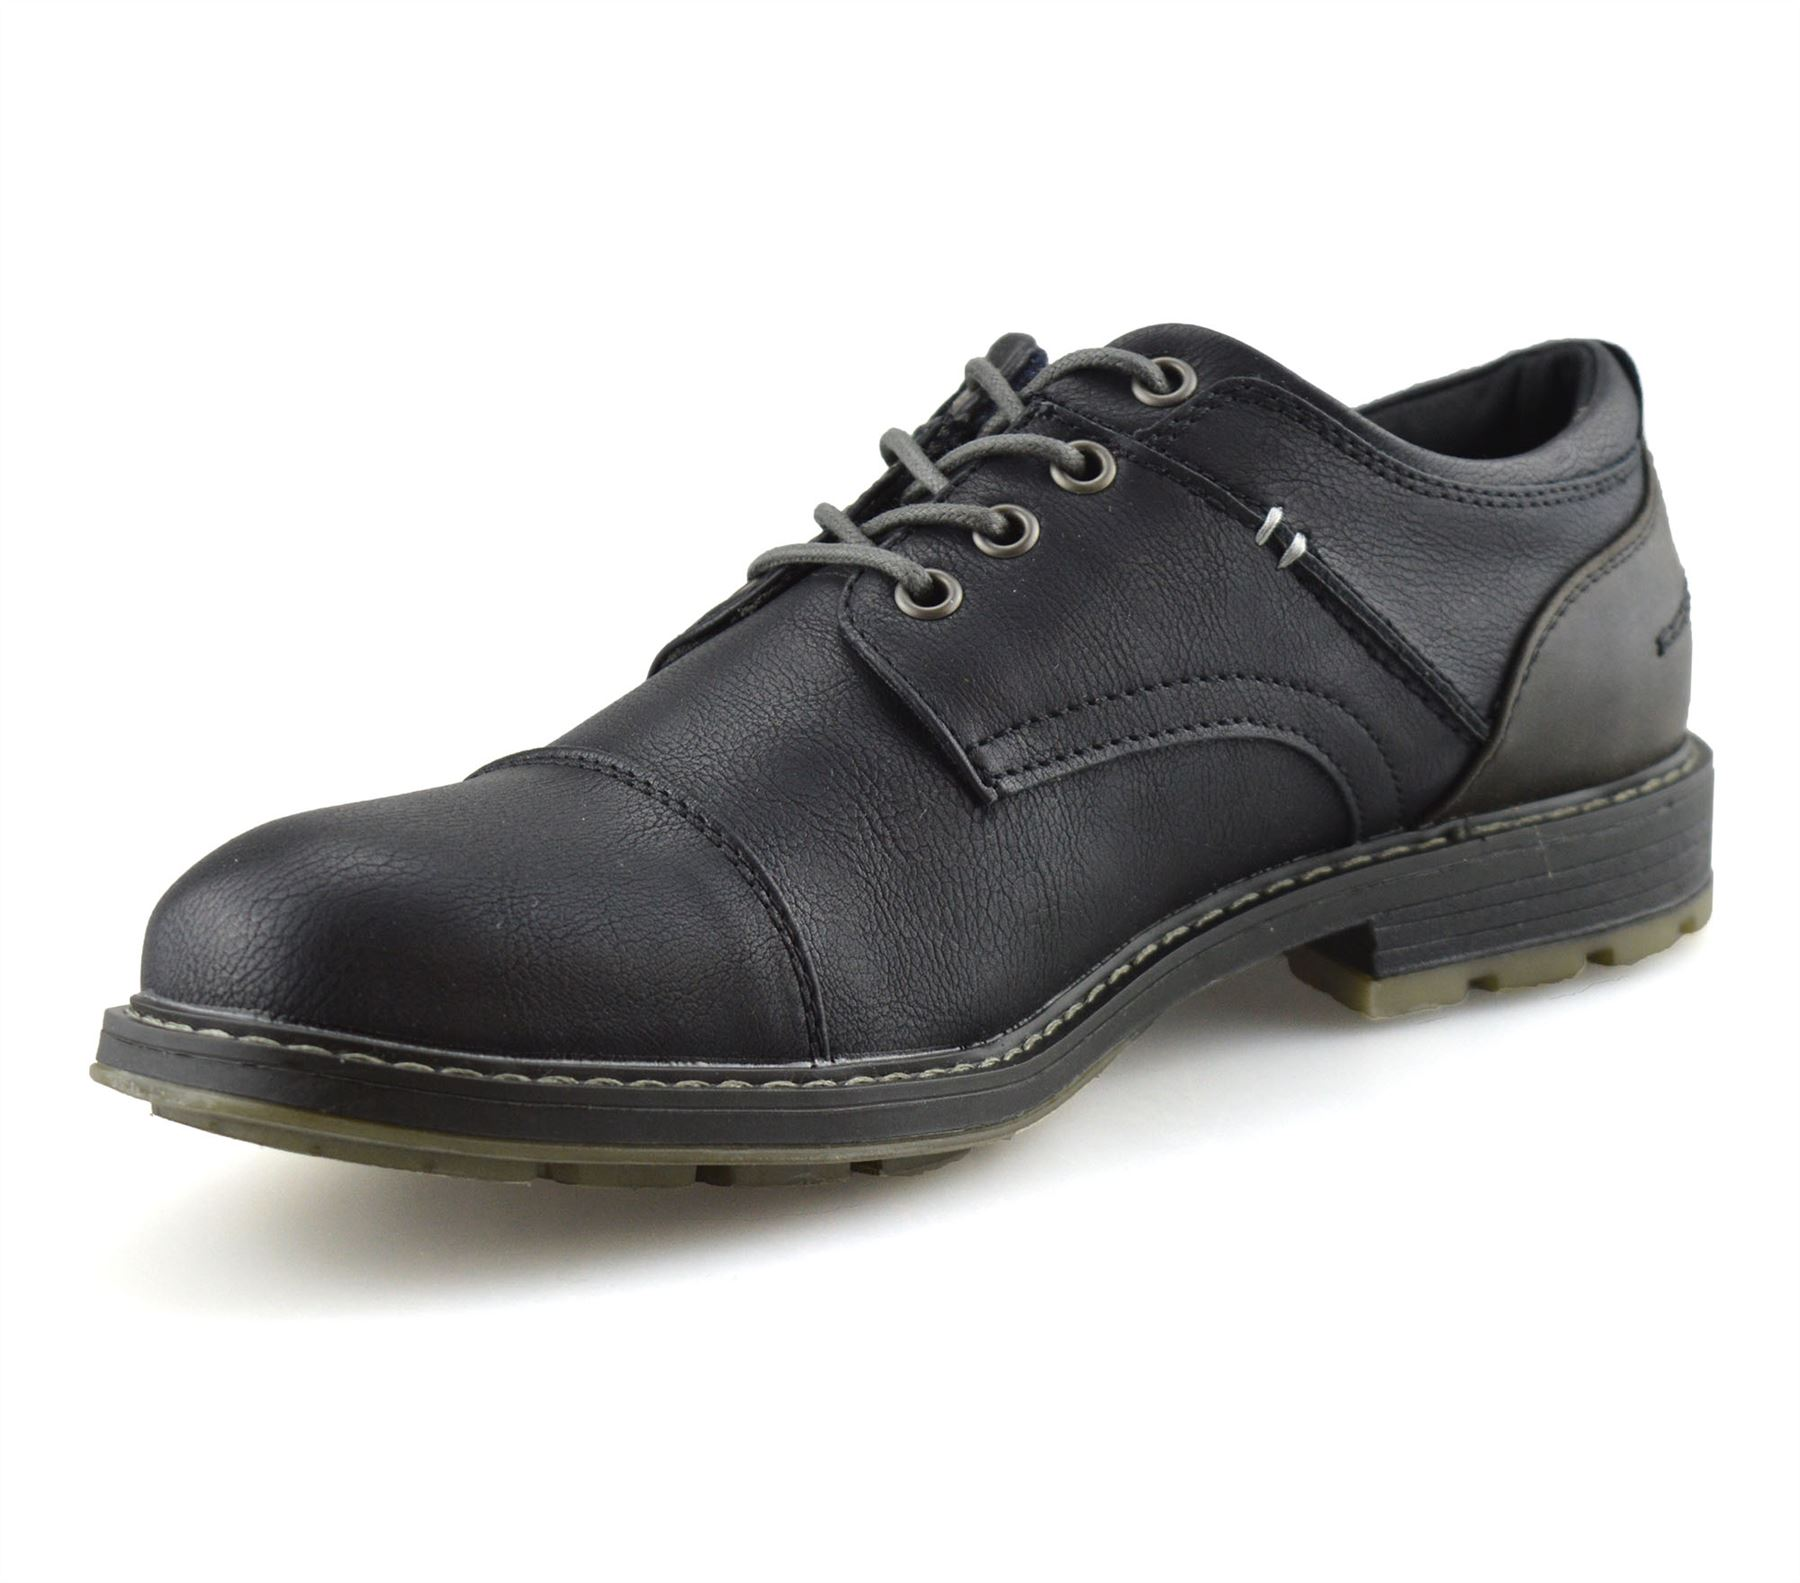 Mens-Smart-Casual-Comfort-Lace-Up-Work-Office-Formal-Derby-Toe-Cap-Shoes-Size thumbnail 12